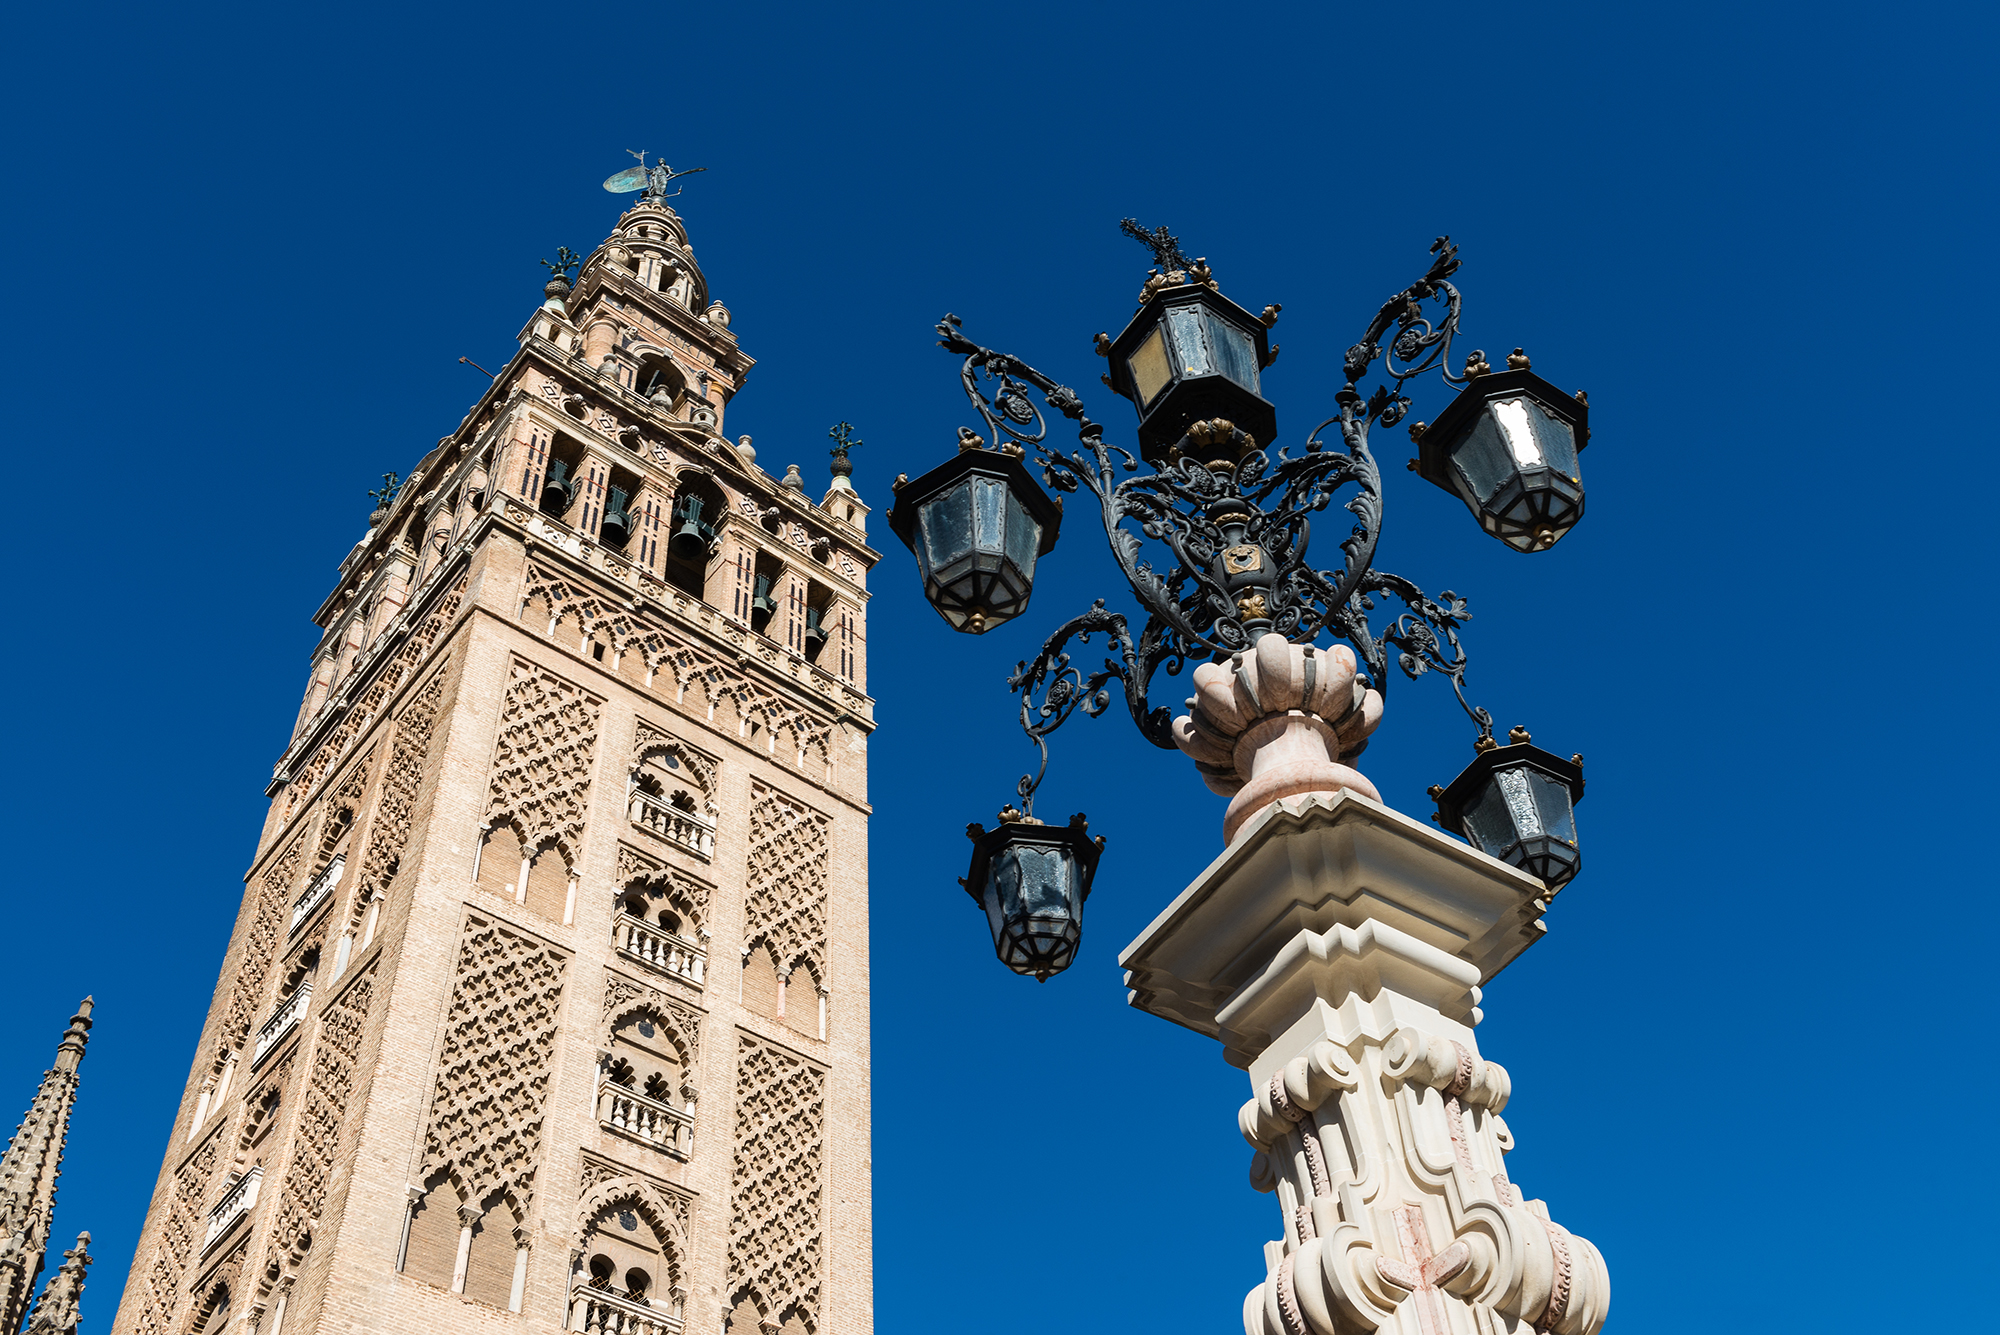 Tower and spire of The Giralda